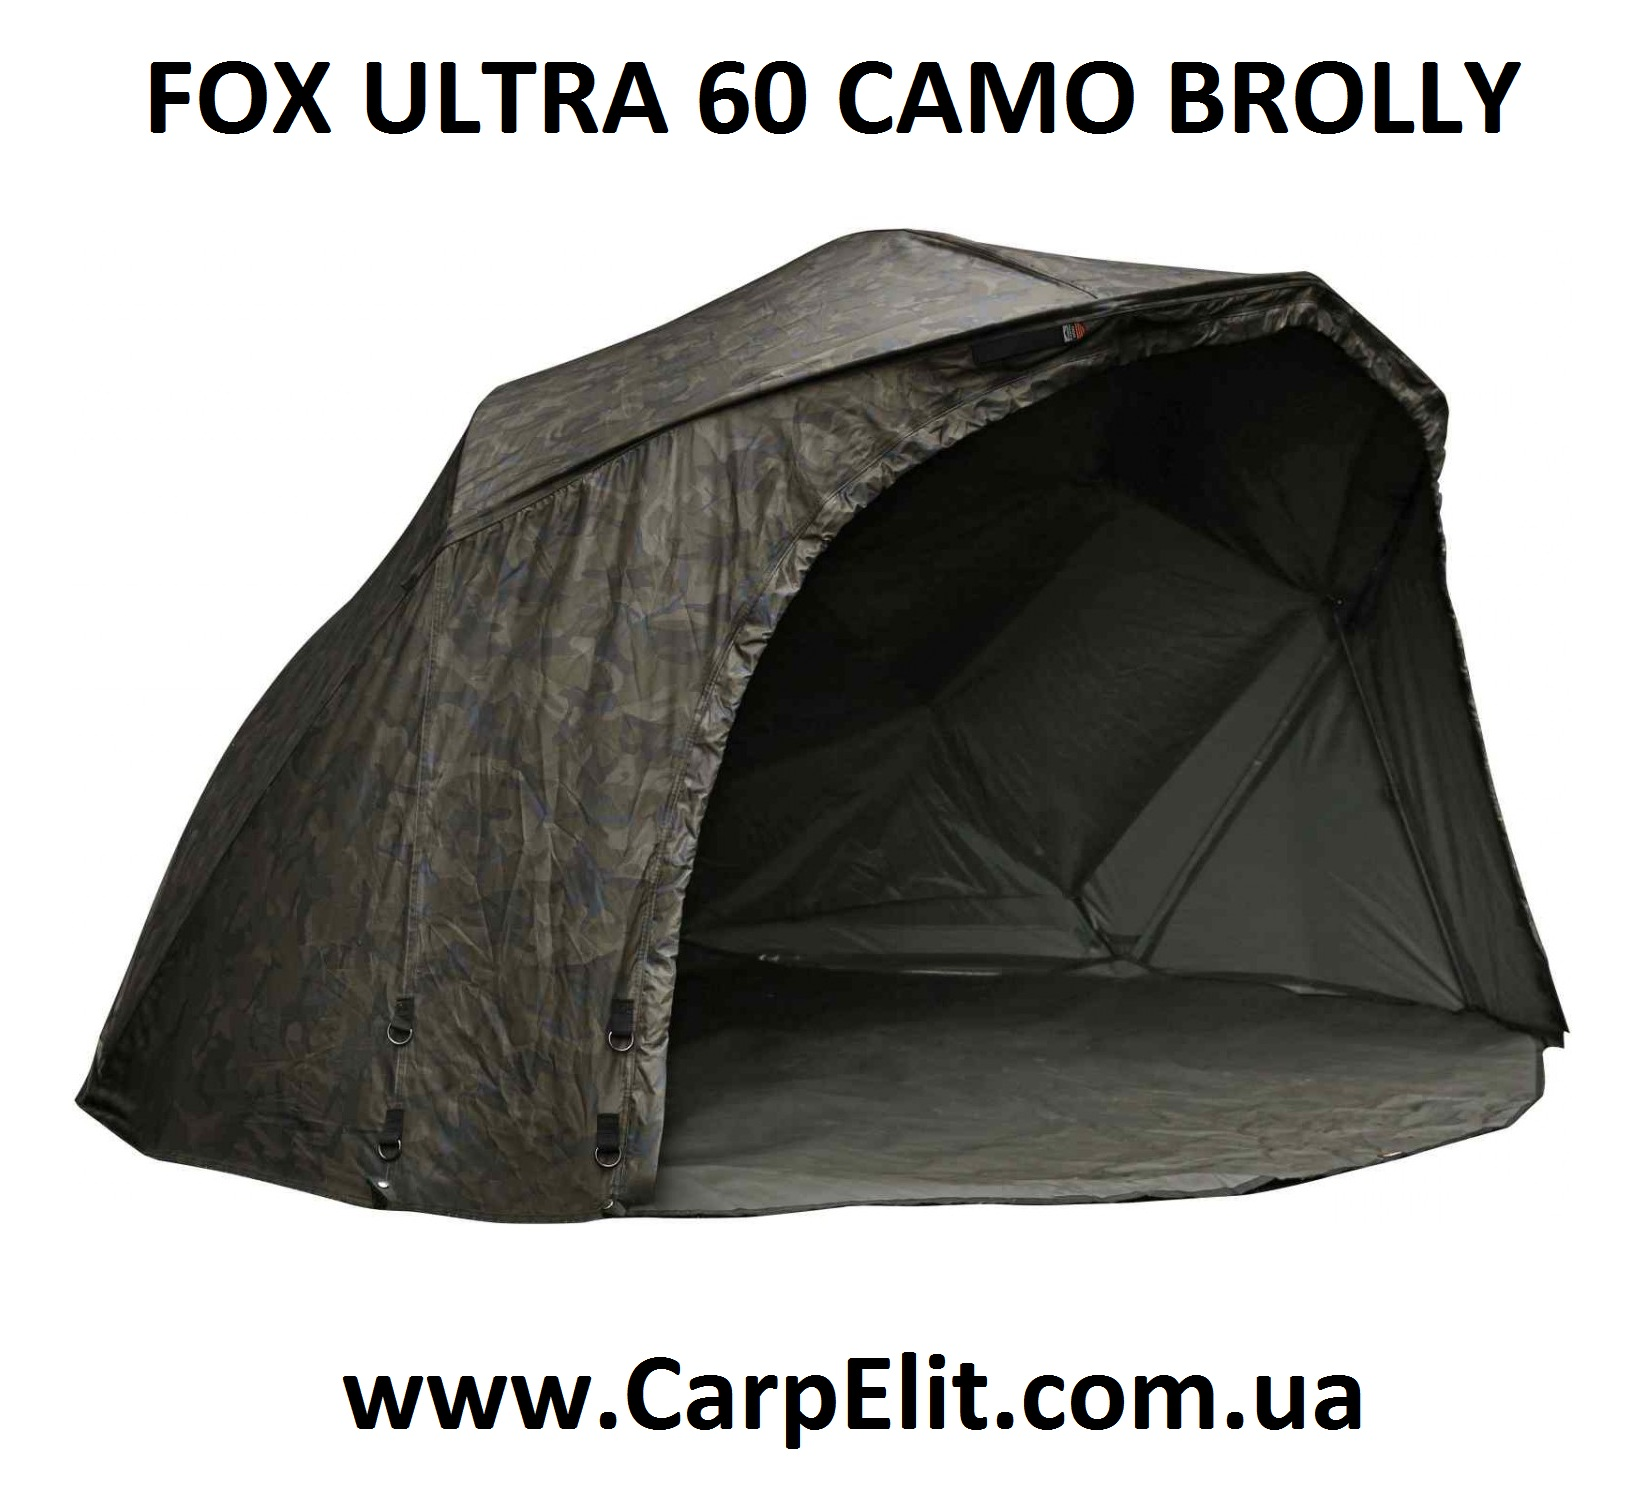 Палатка FOX ULTRA 60 CAMO BROLLY